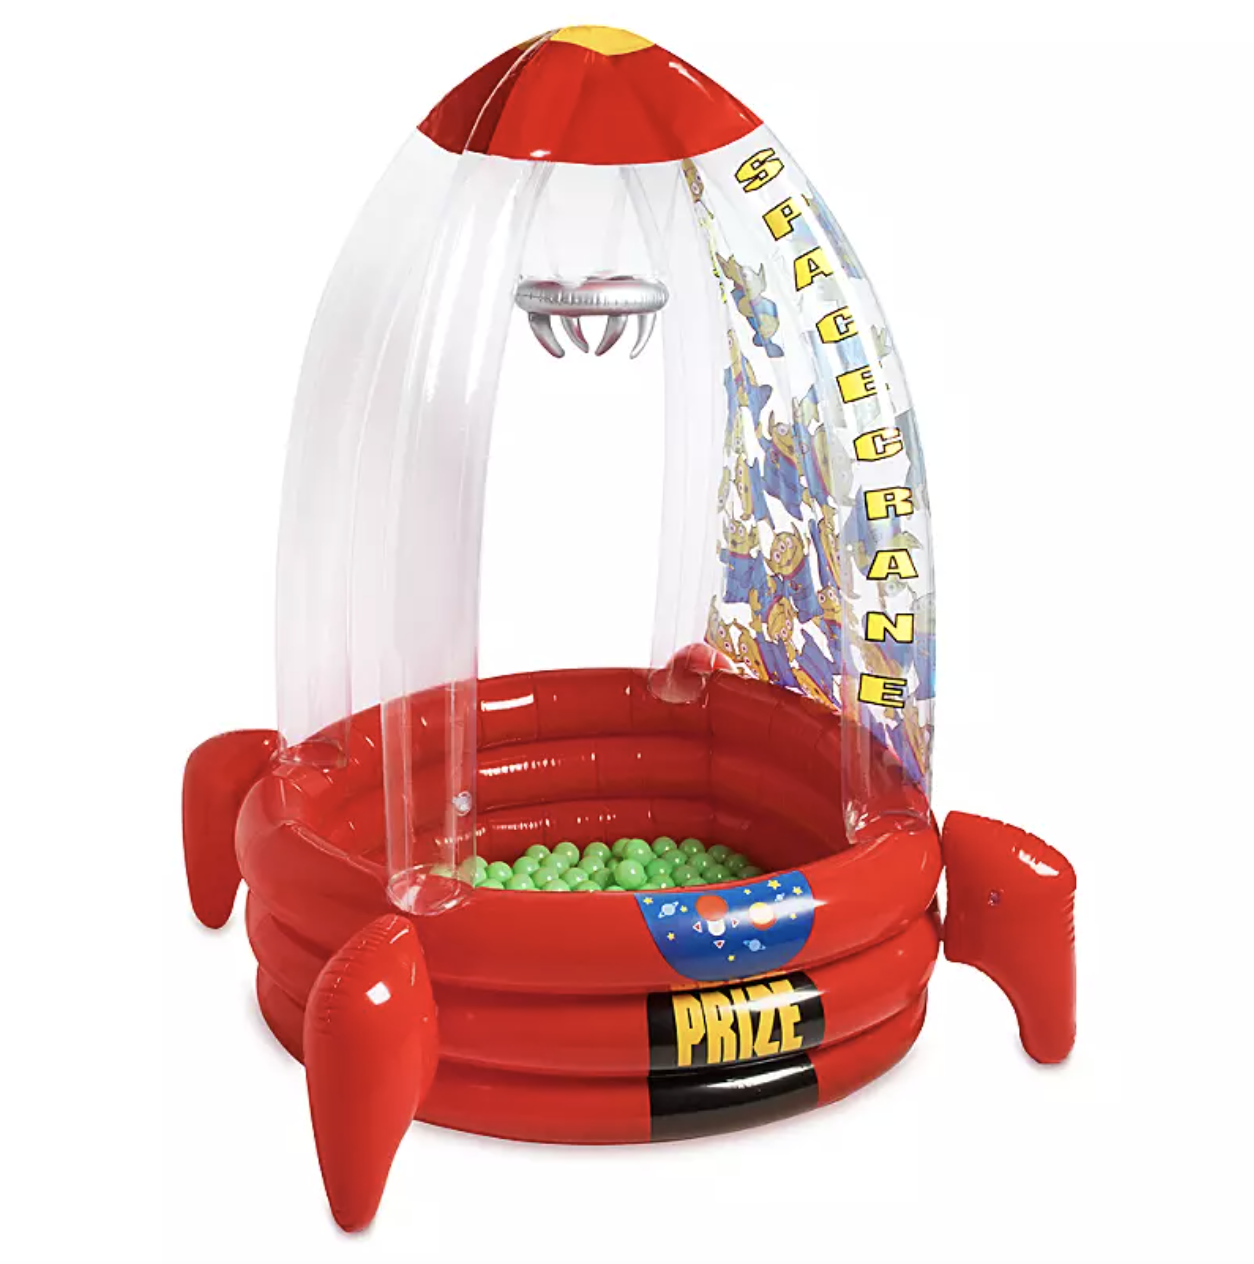 a rocket shaped ball pit with green balls in the middle